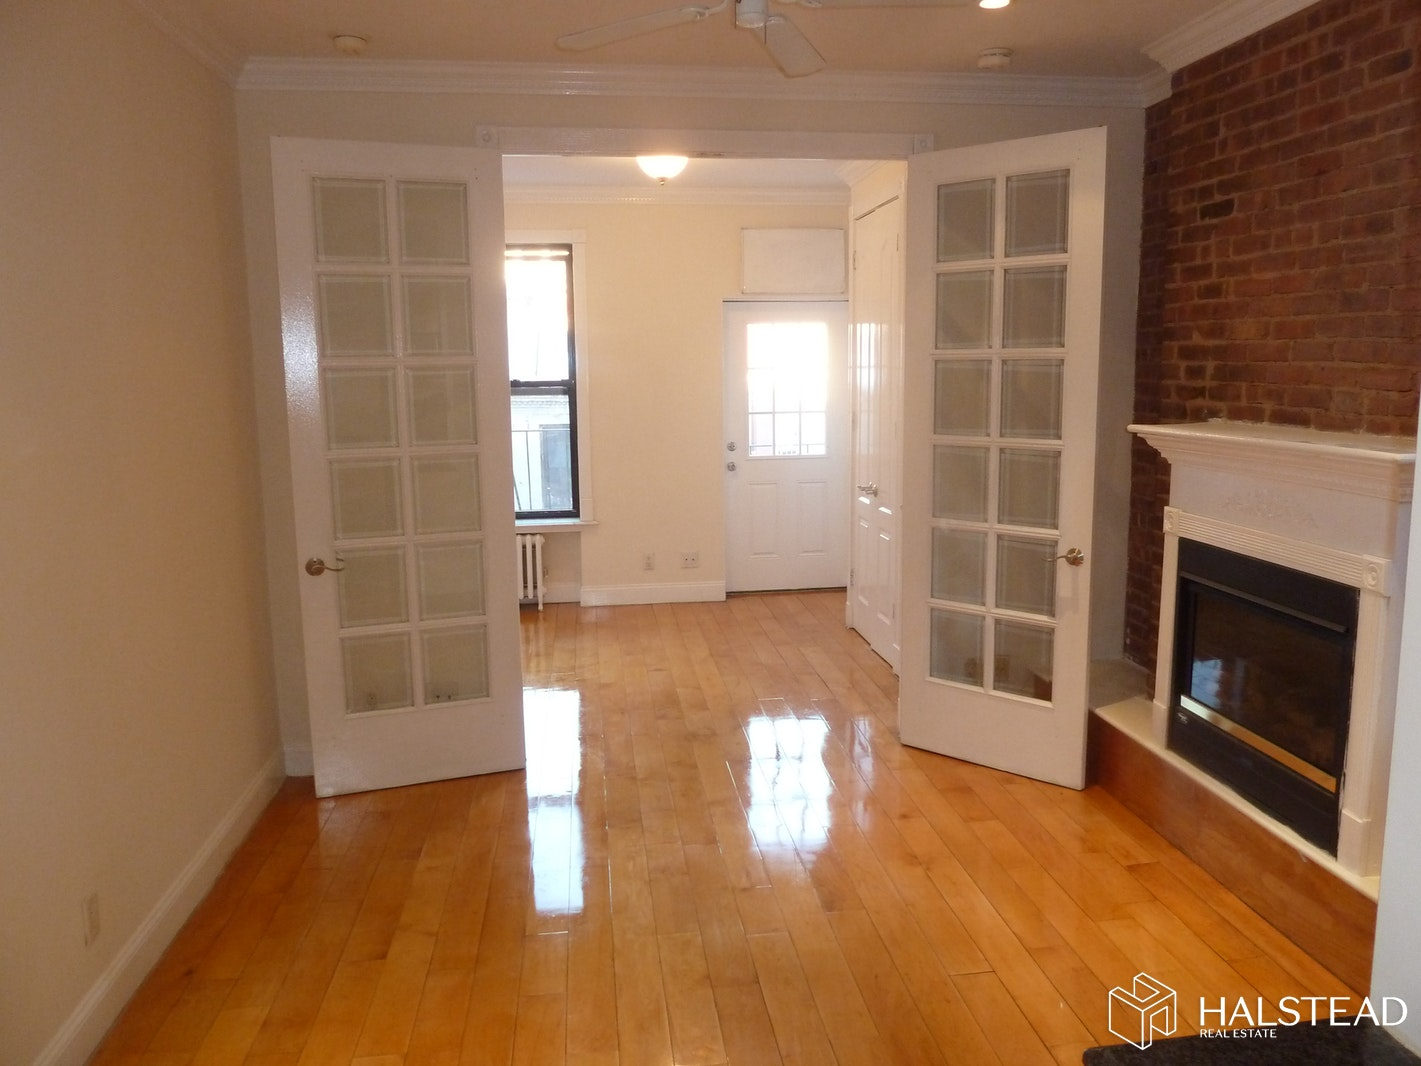 75 East 3rd Street D3, East Village, NYC, 10003, Price Not Disclosed, Rented Property, Halstead Real Estate, Photo 1